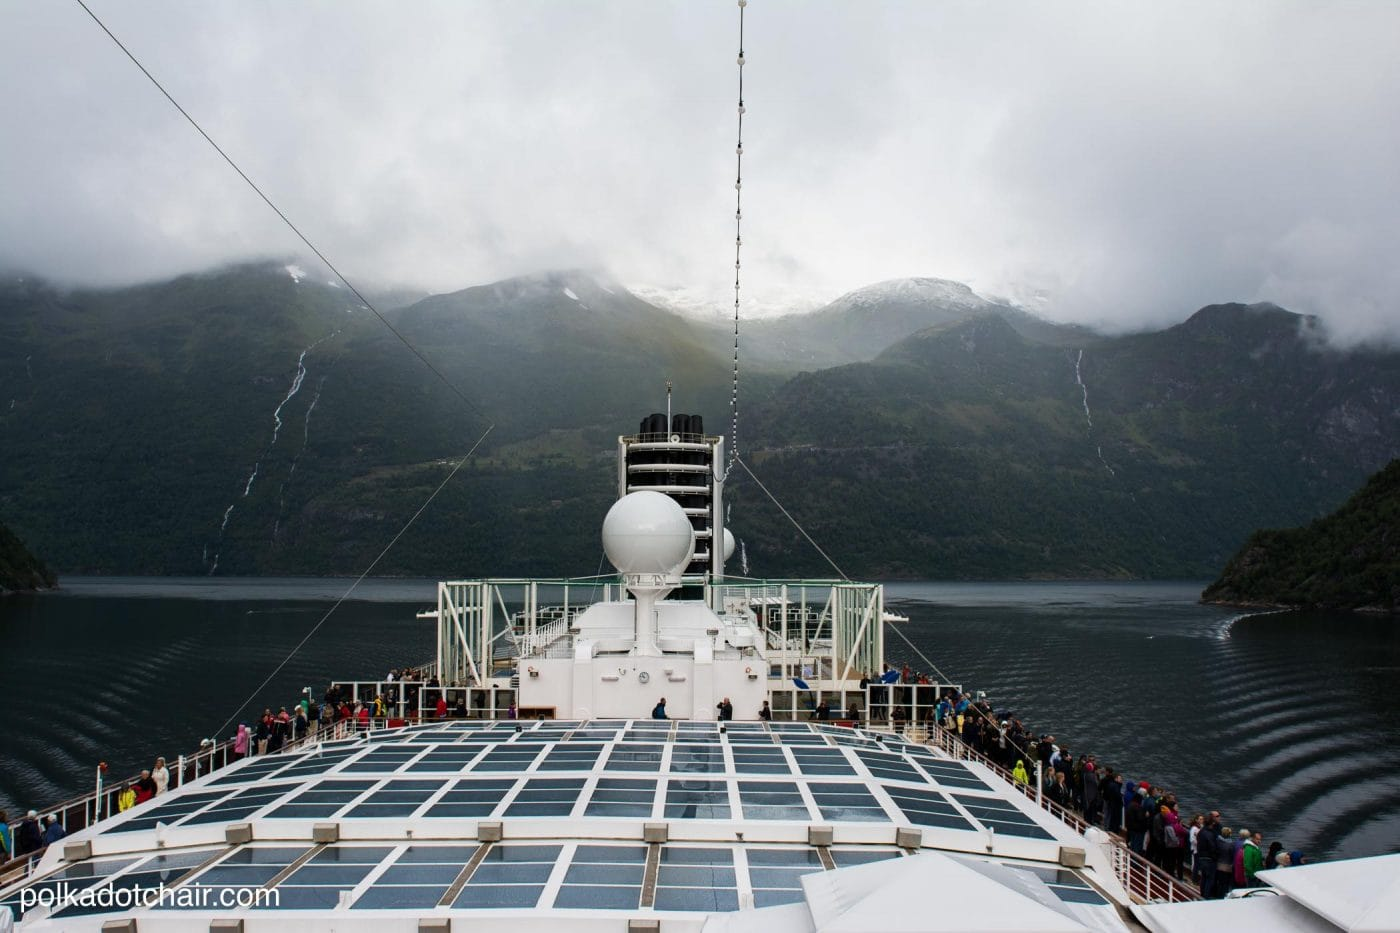 Snapshots of the Norwegian fjords and things to do in Norway. Suggestions for norwegian cruise vacations for families.